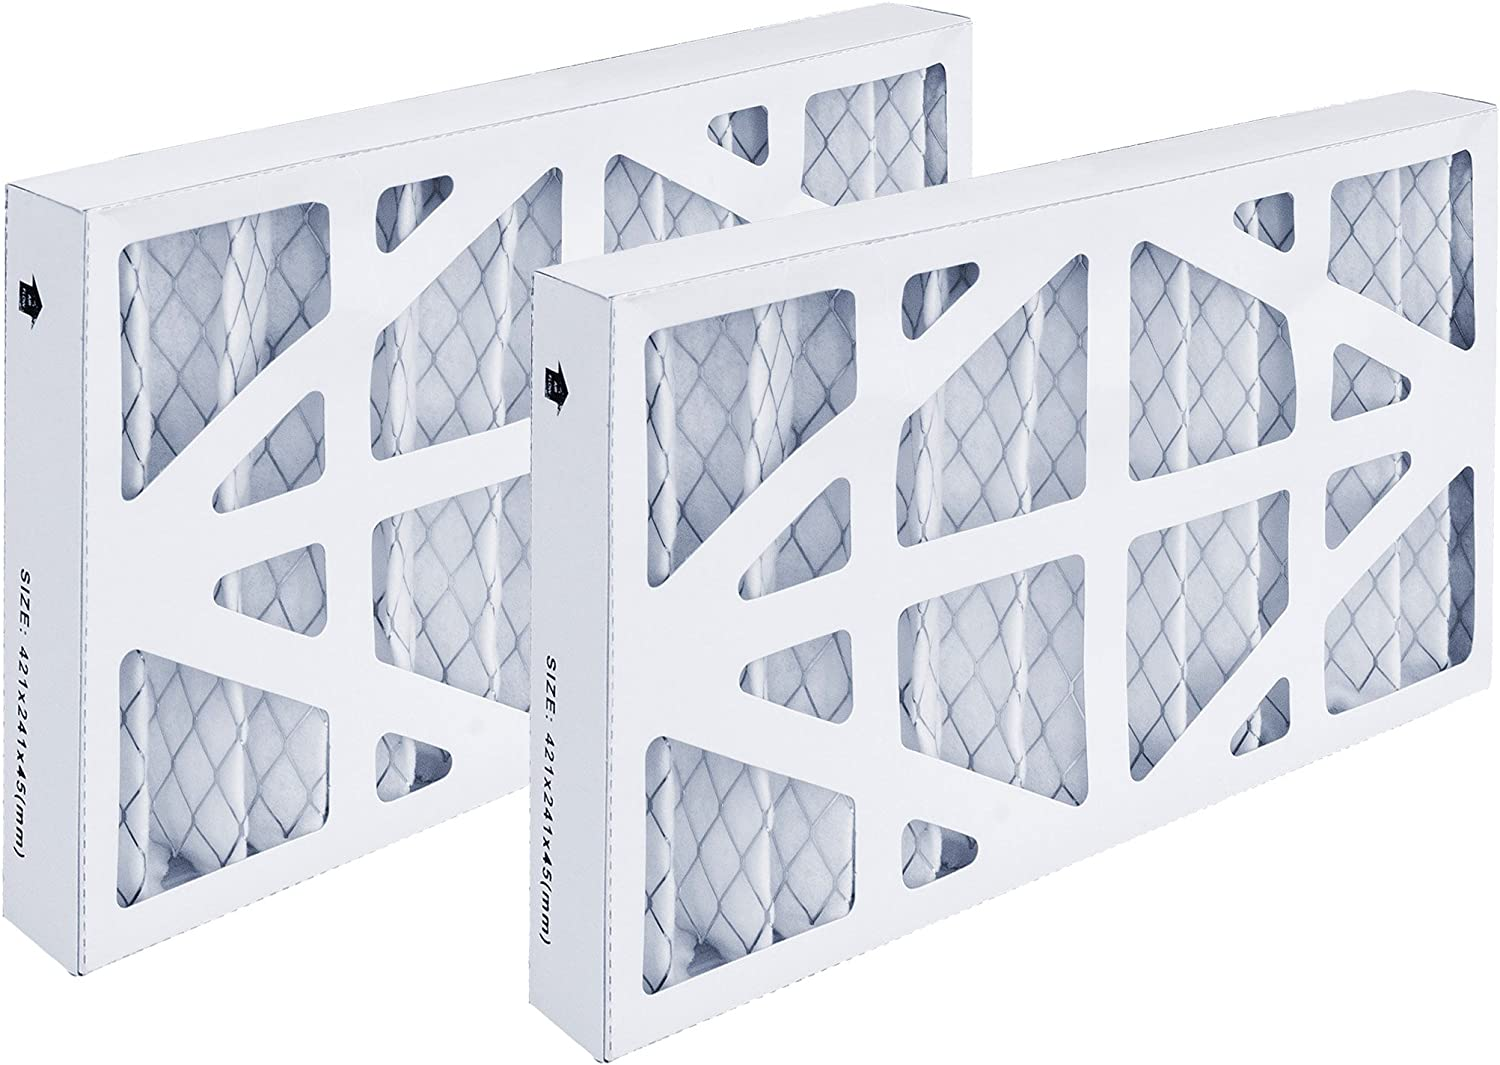 POWERTEC 75040 Outer Air Filter for POWERTEC AF4000 Air Filtration System, 5 Micron | 2 Pack